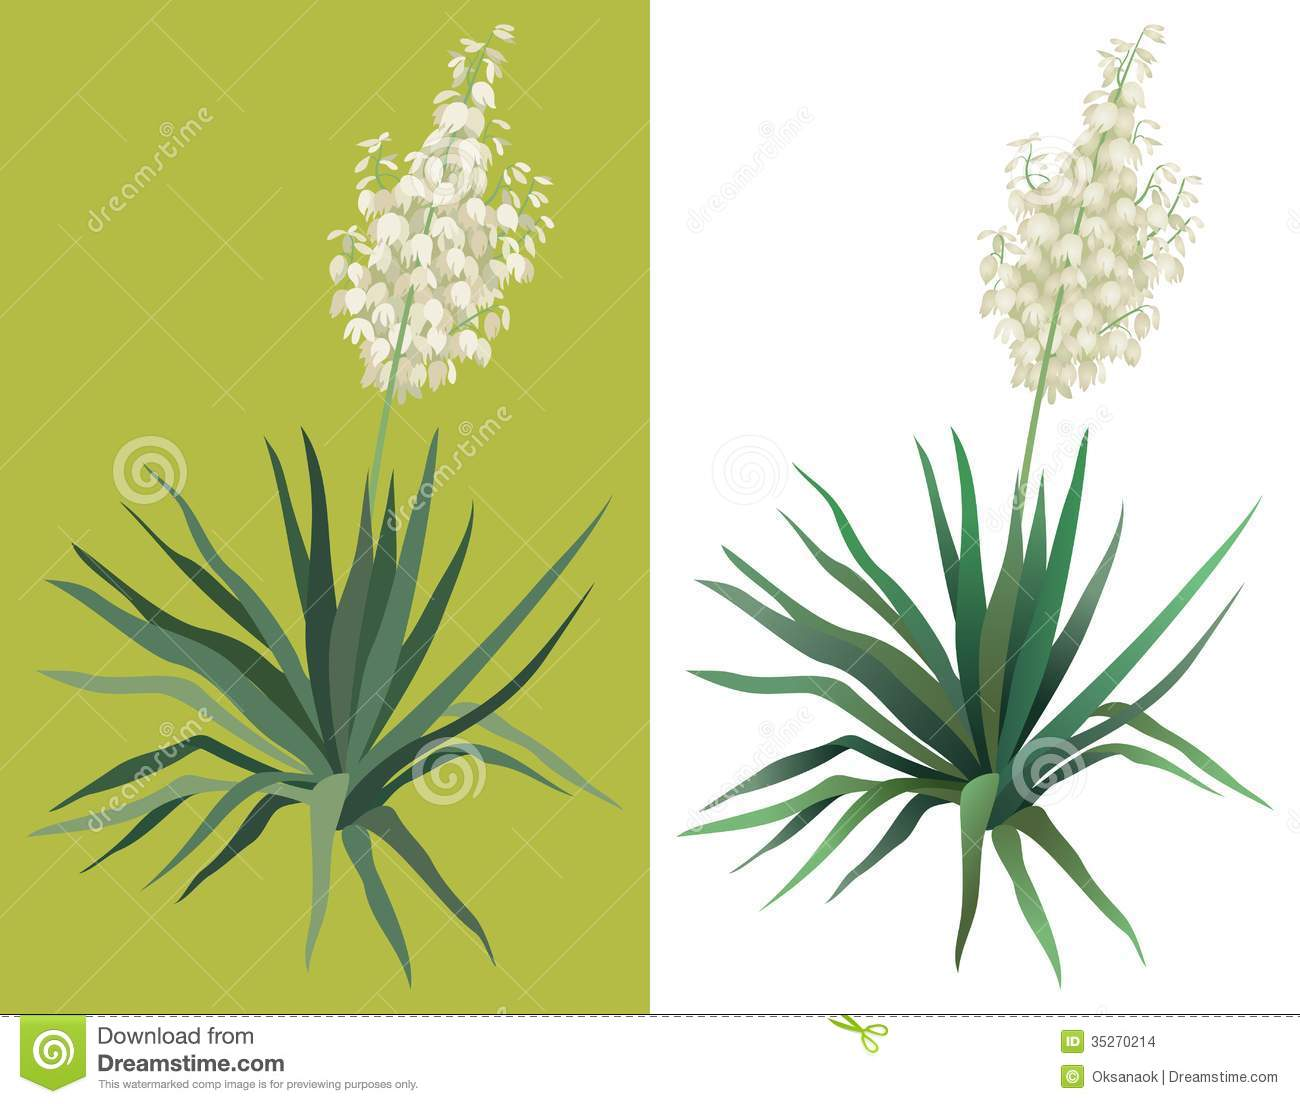 Flowering Plant Yucca Stock Vector Illustration Of Blossom 35270214